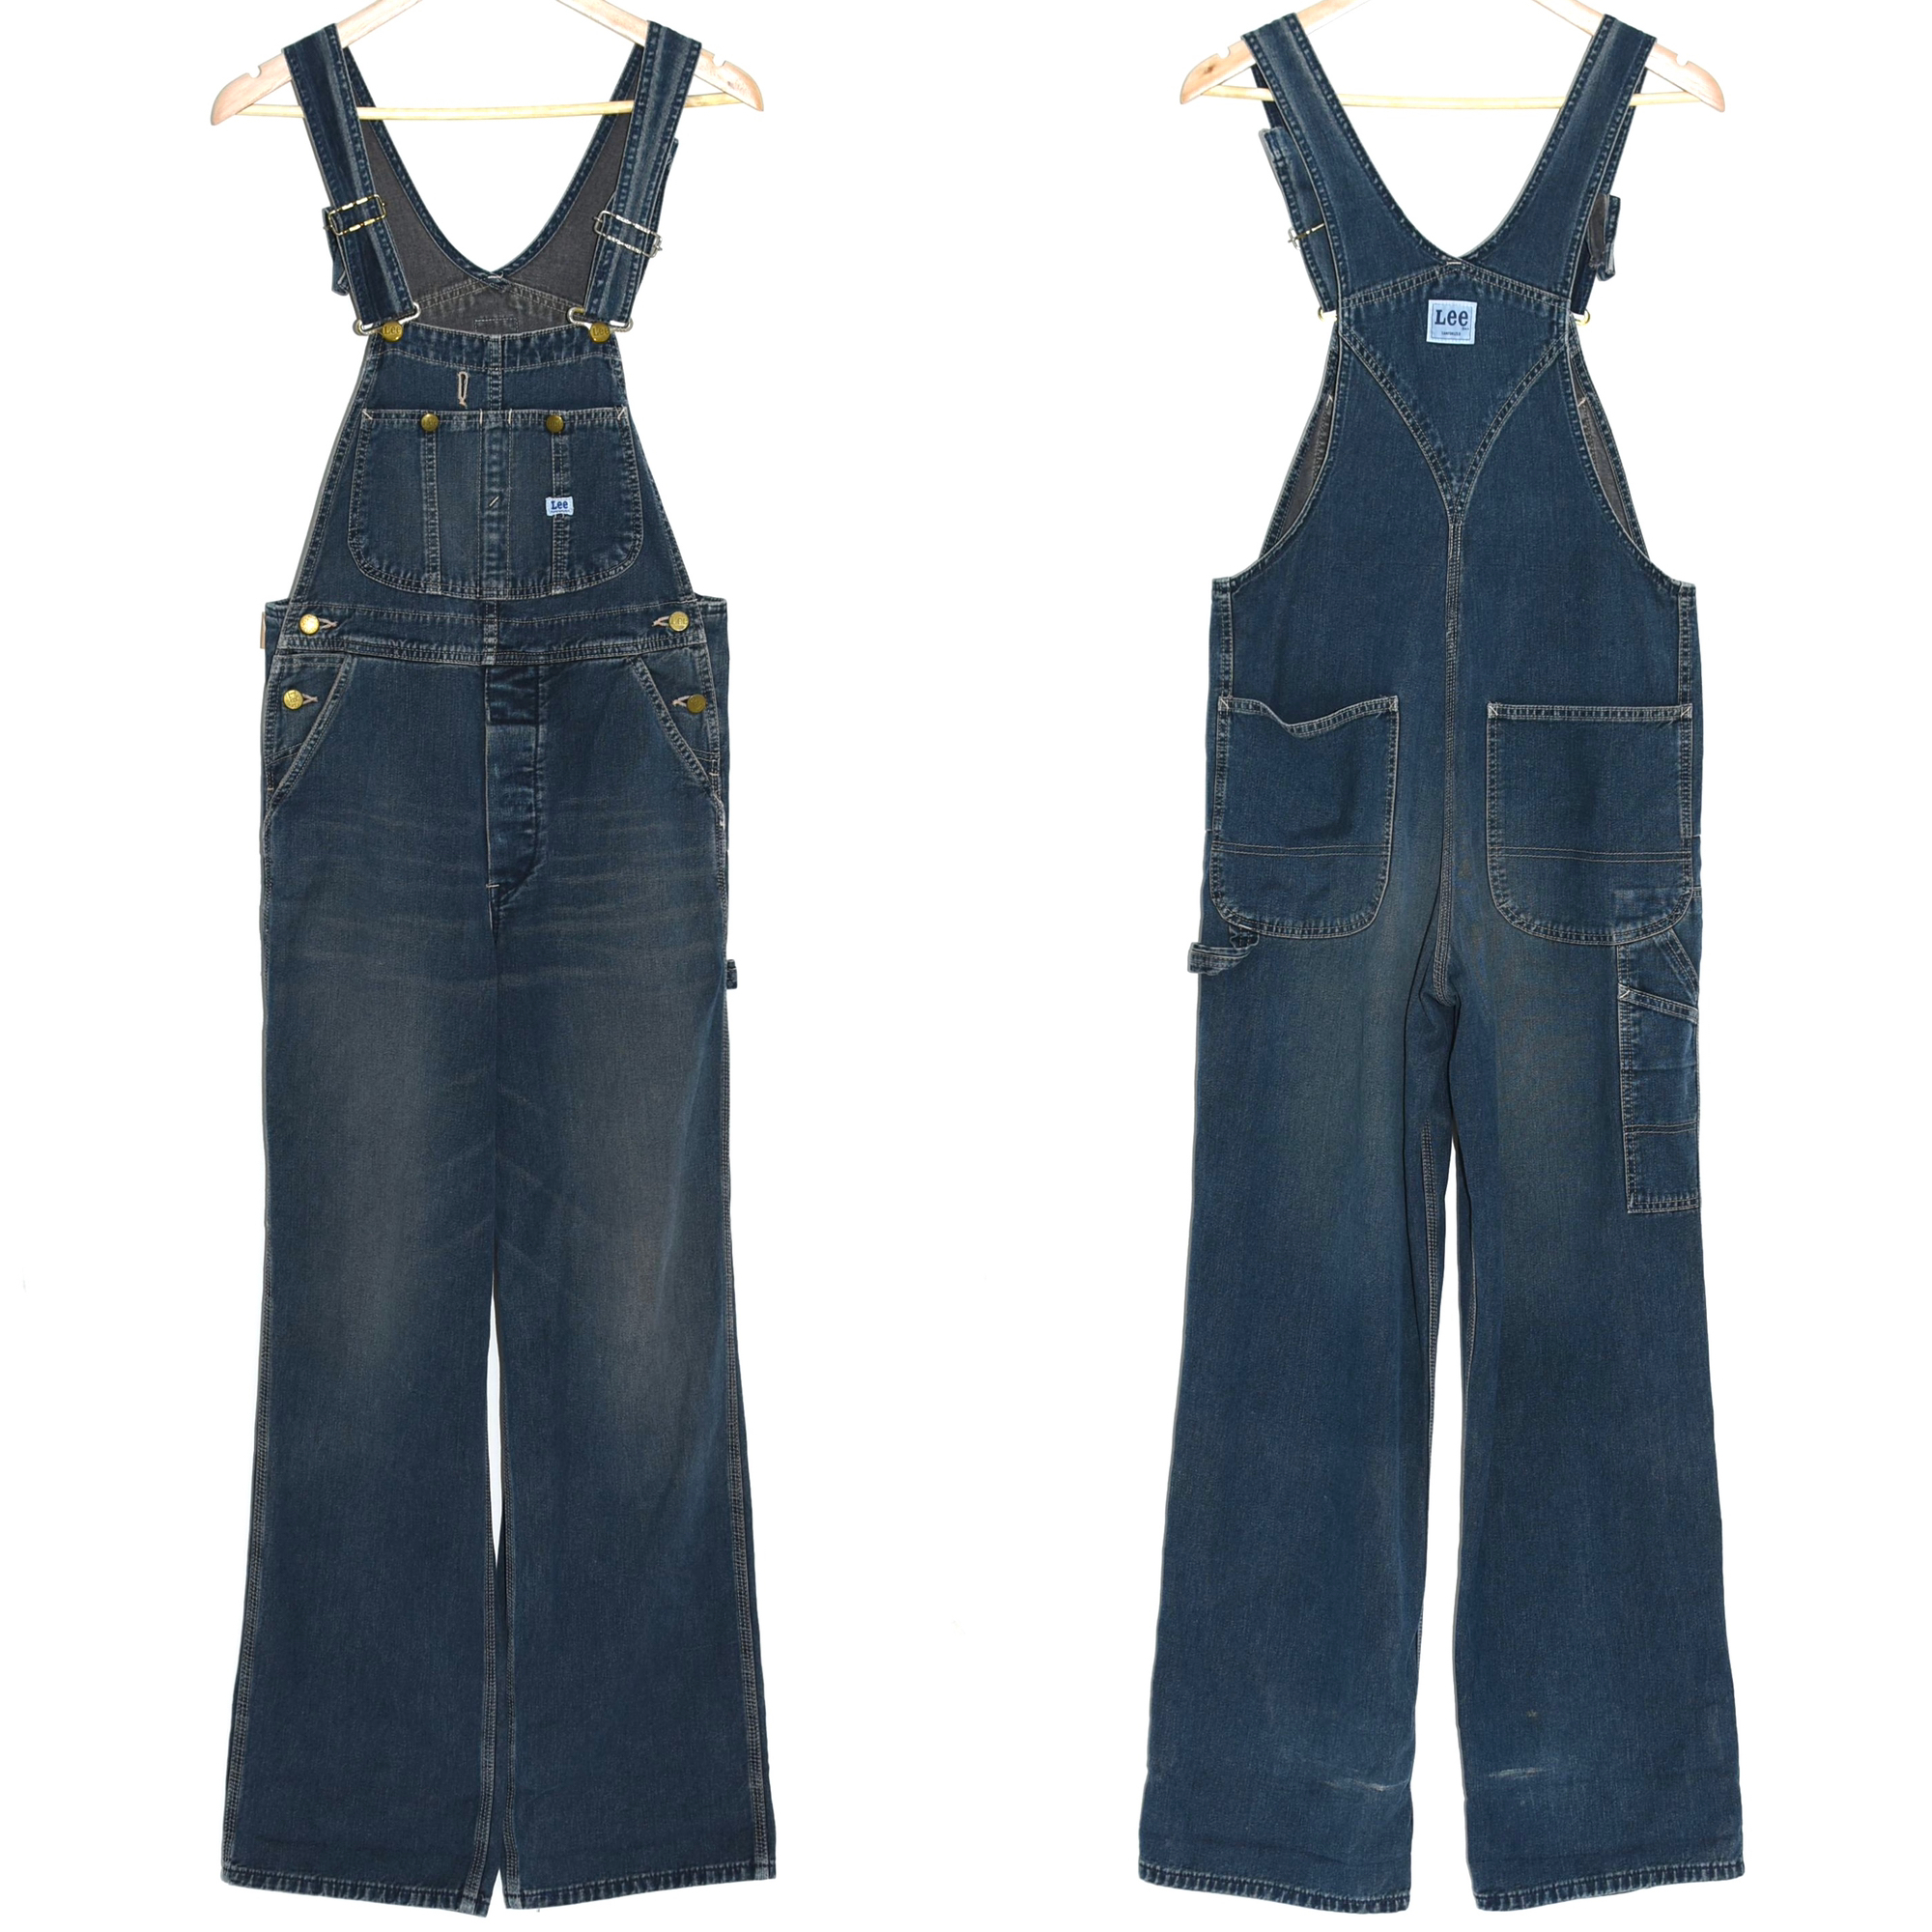 Lee denim overalls Made in JAPAN by EDWIN